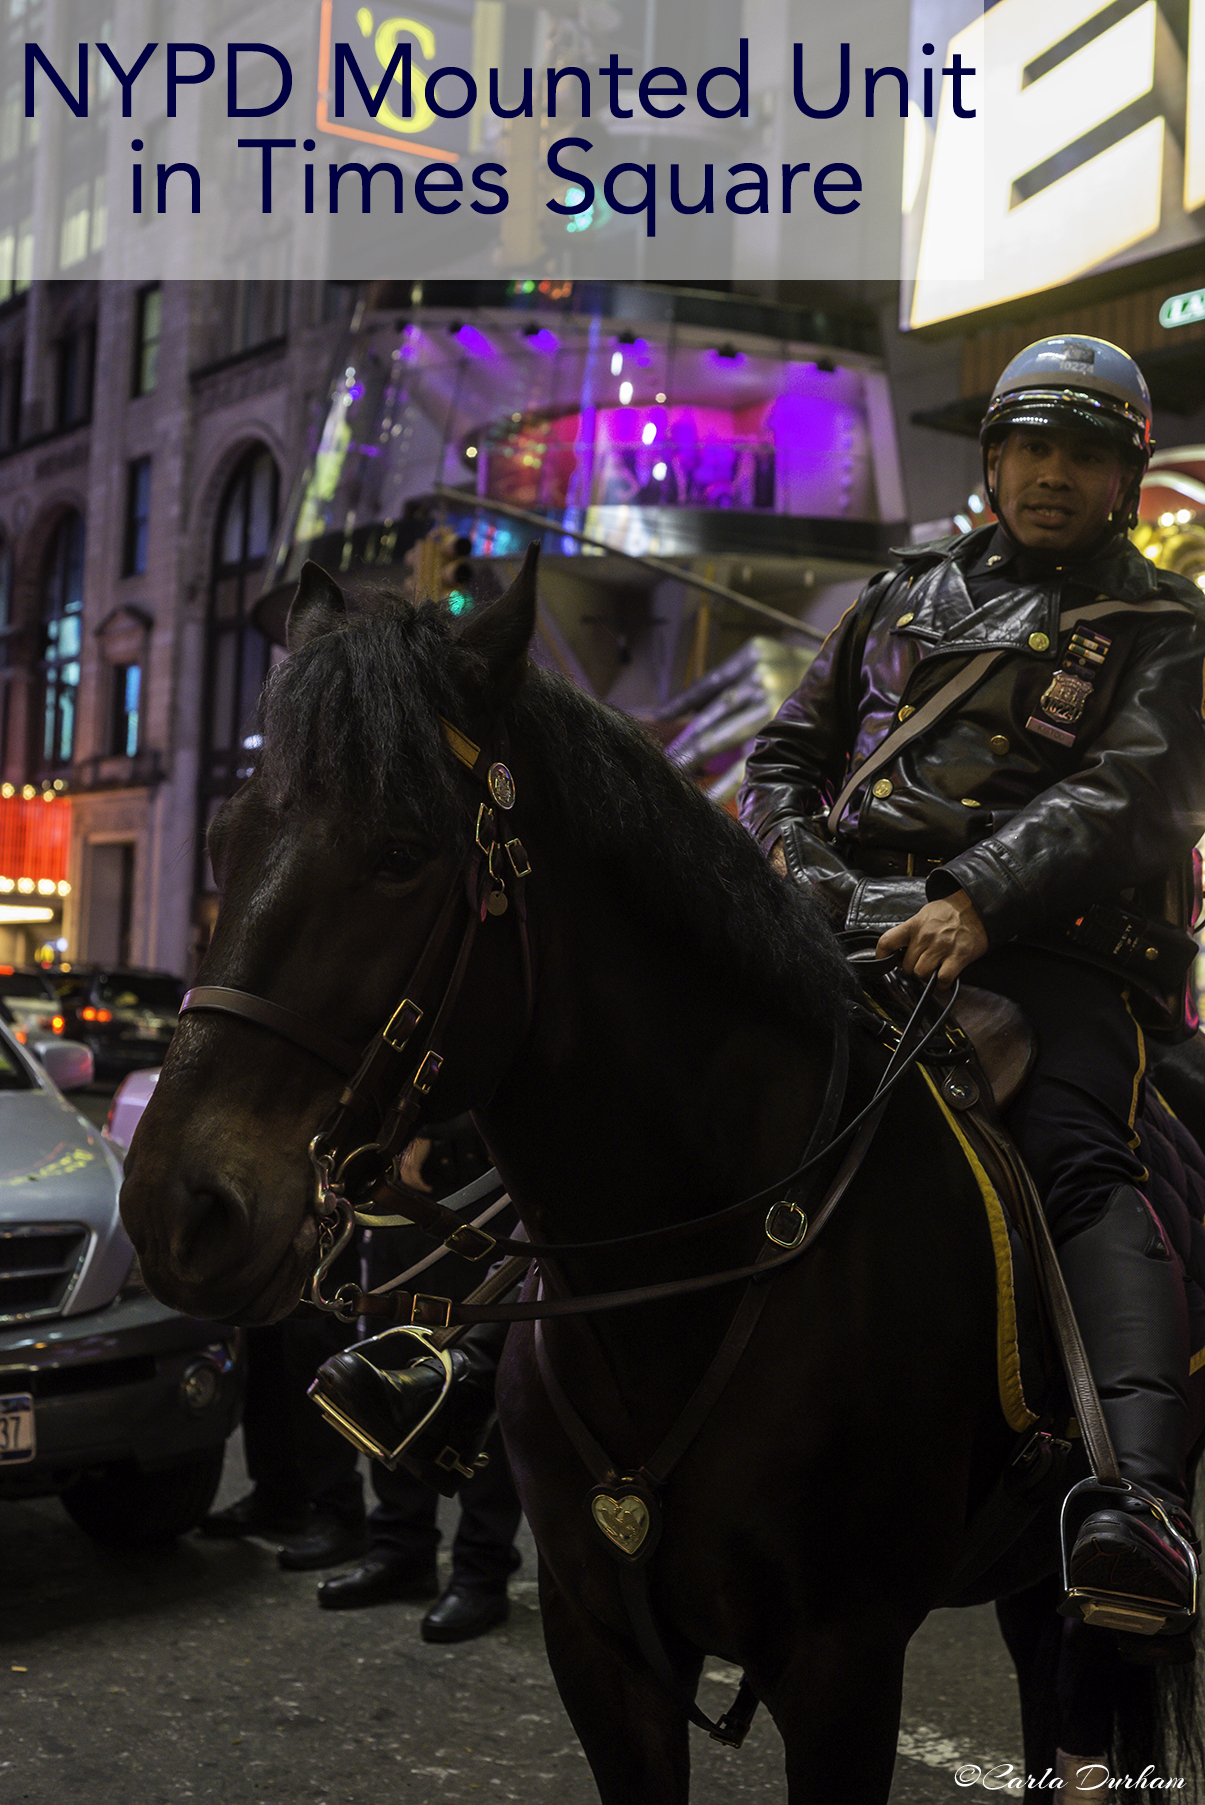 New York Police Department officers on horses in Times Square